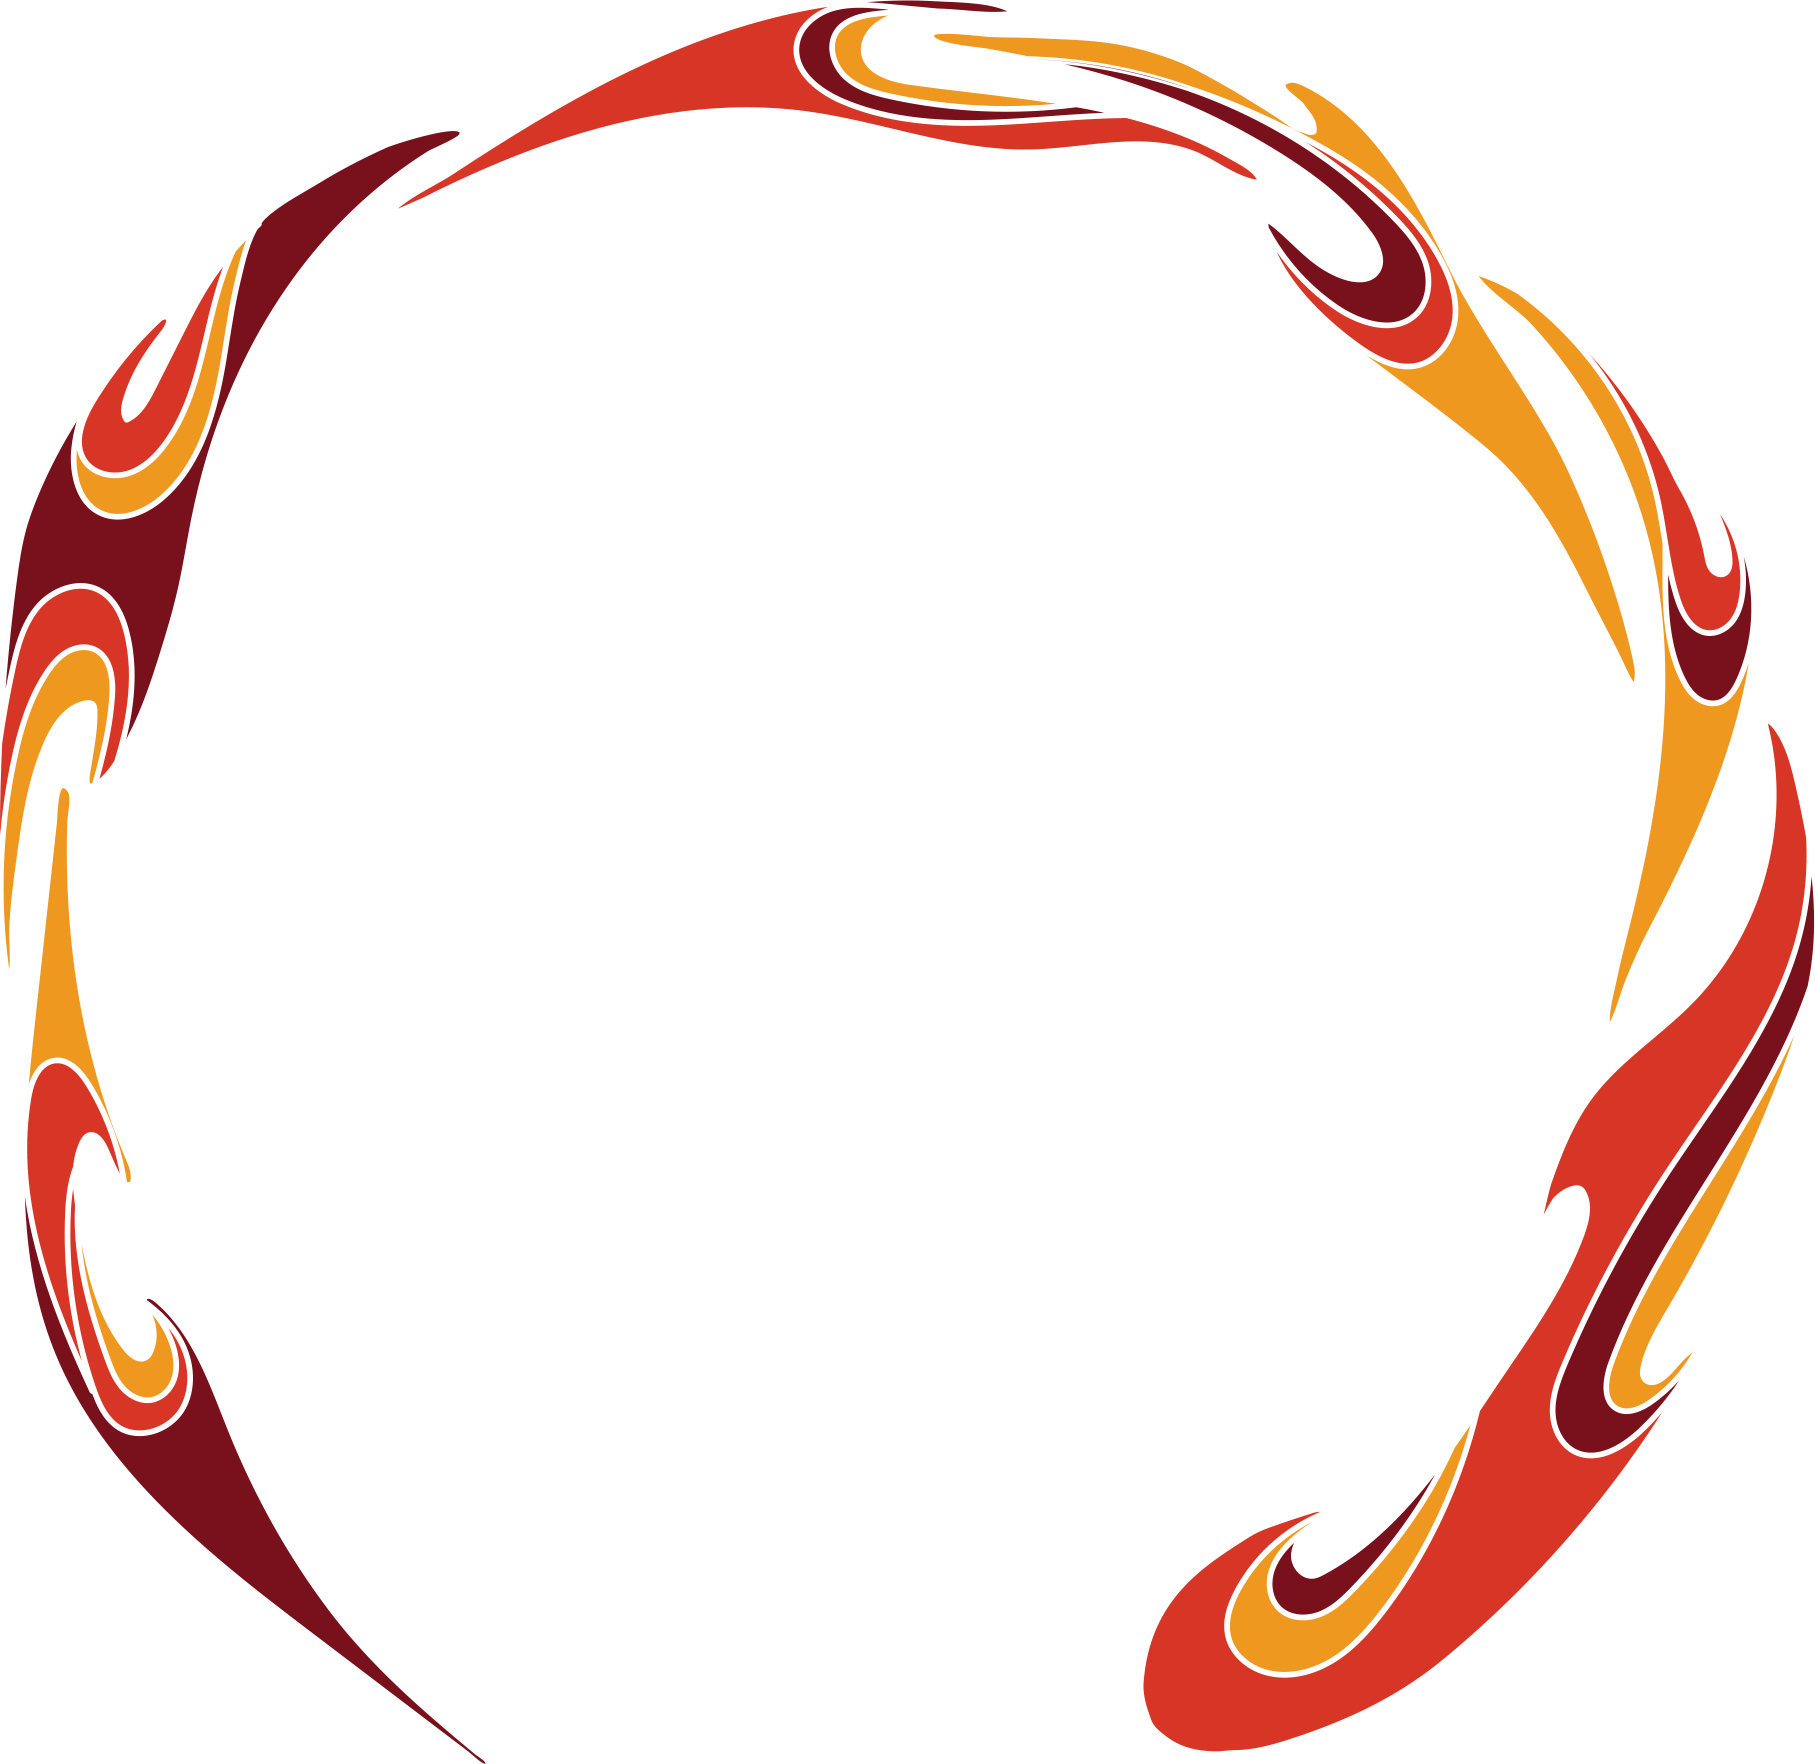 Circles of Fire